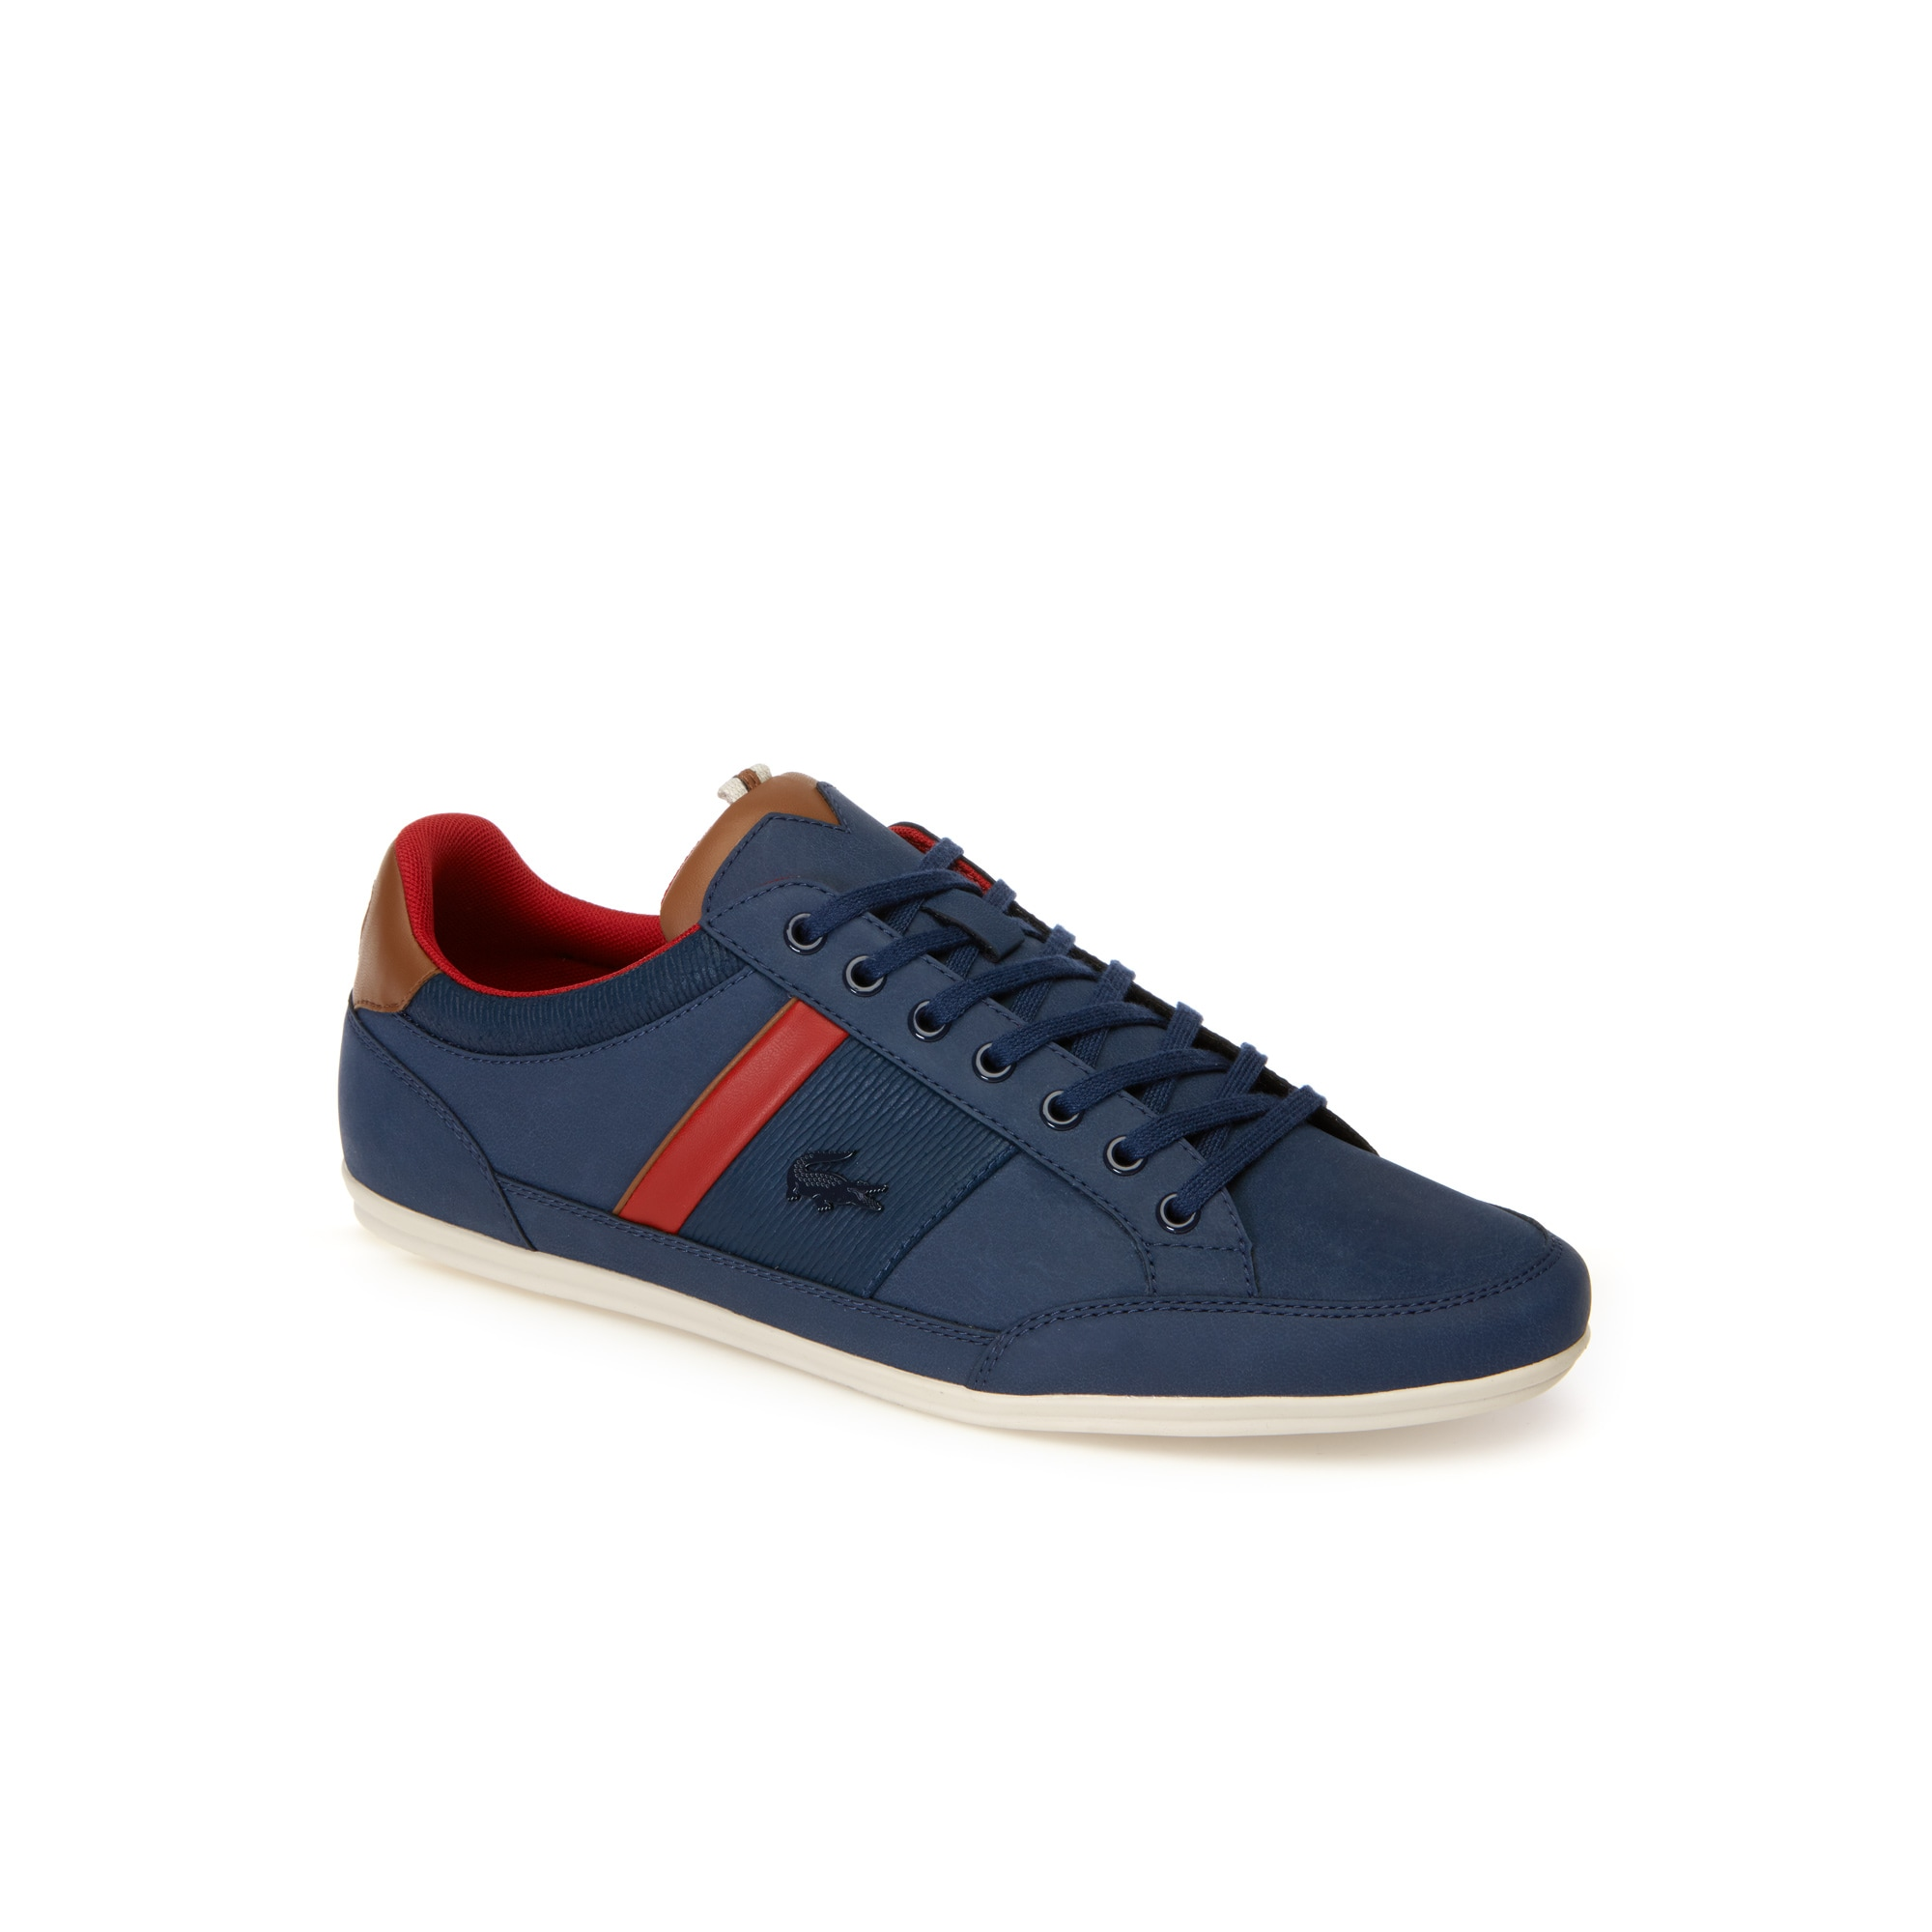 Men's Chaymon Nappa Leather and Suede Trainers